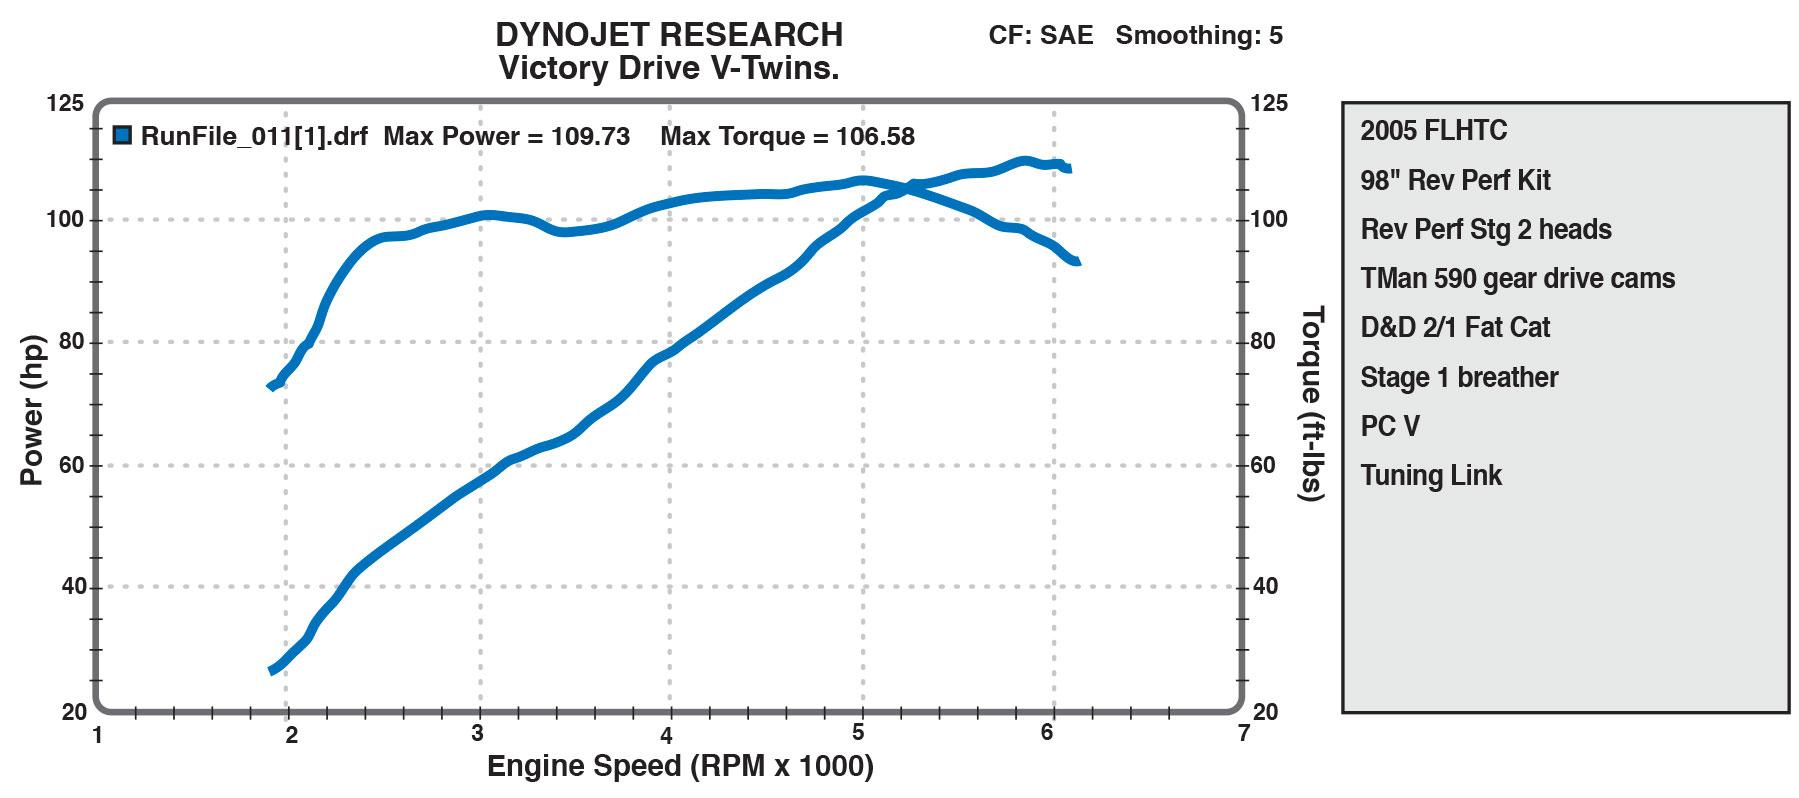 98 cid dyno sheet from Victory Drive 11-6-2012